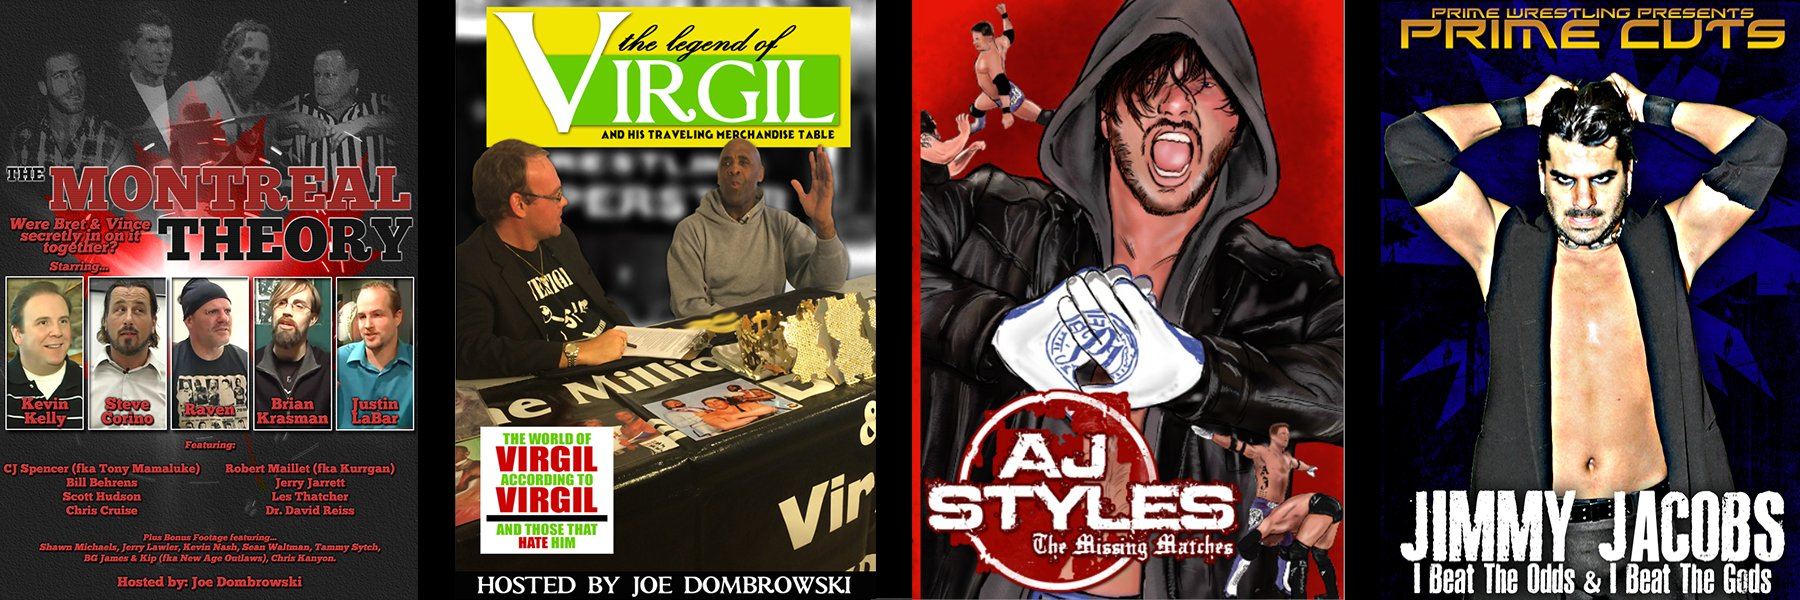 Stream AJ Styles: The Missing Matches & Legend of Virgil Documentary Now!